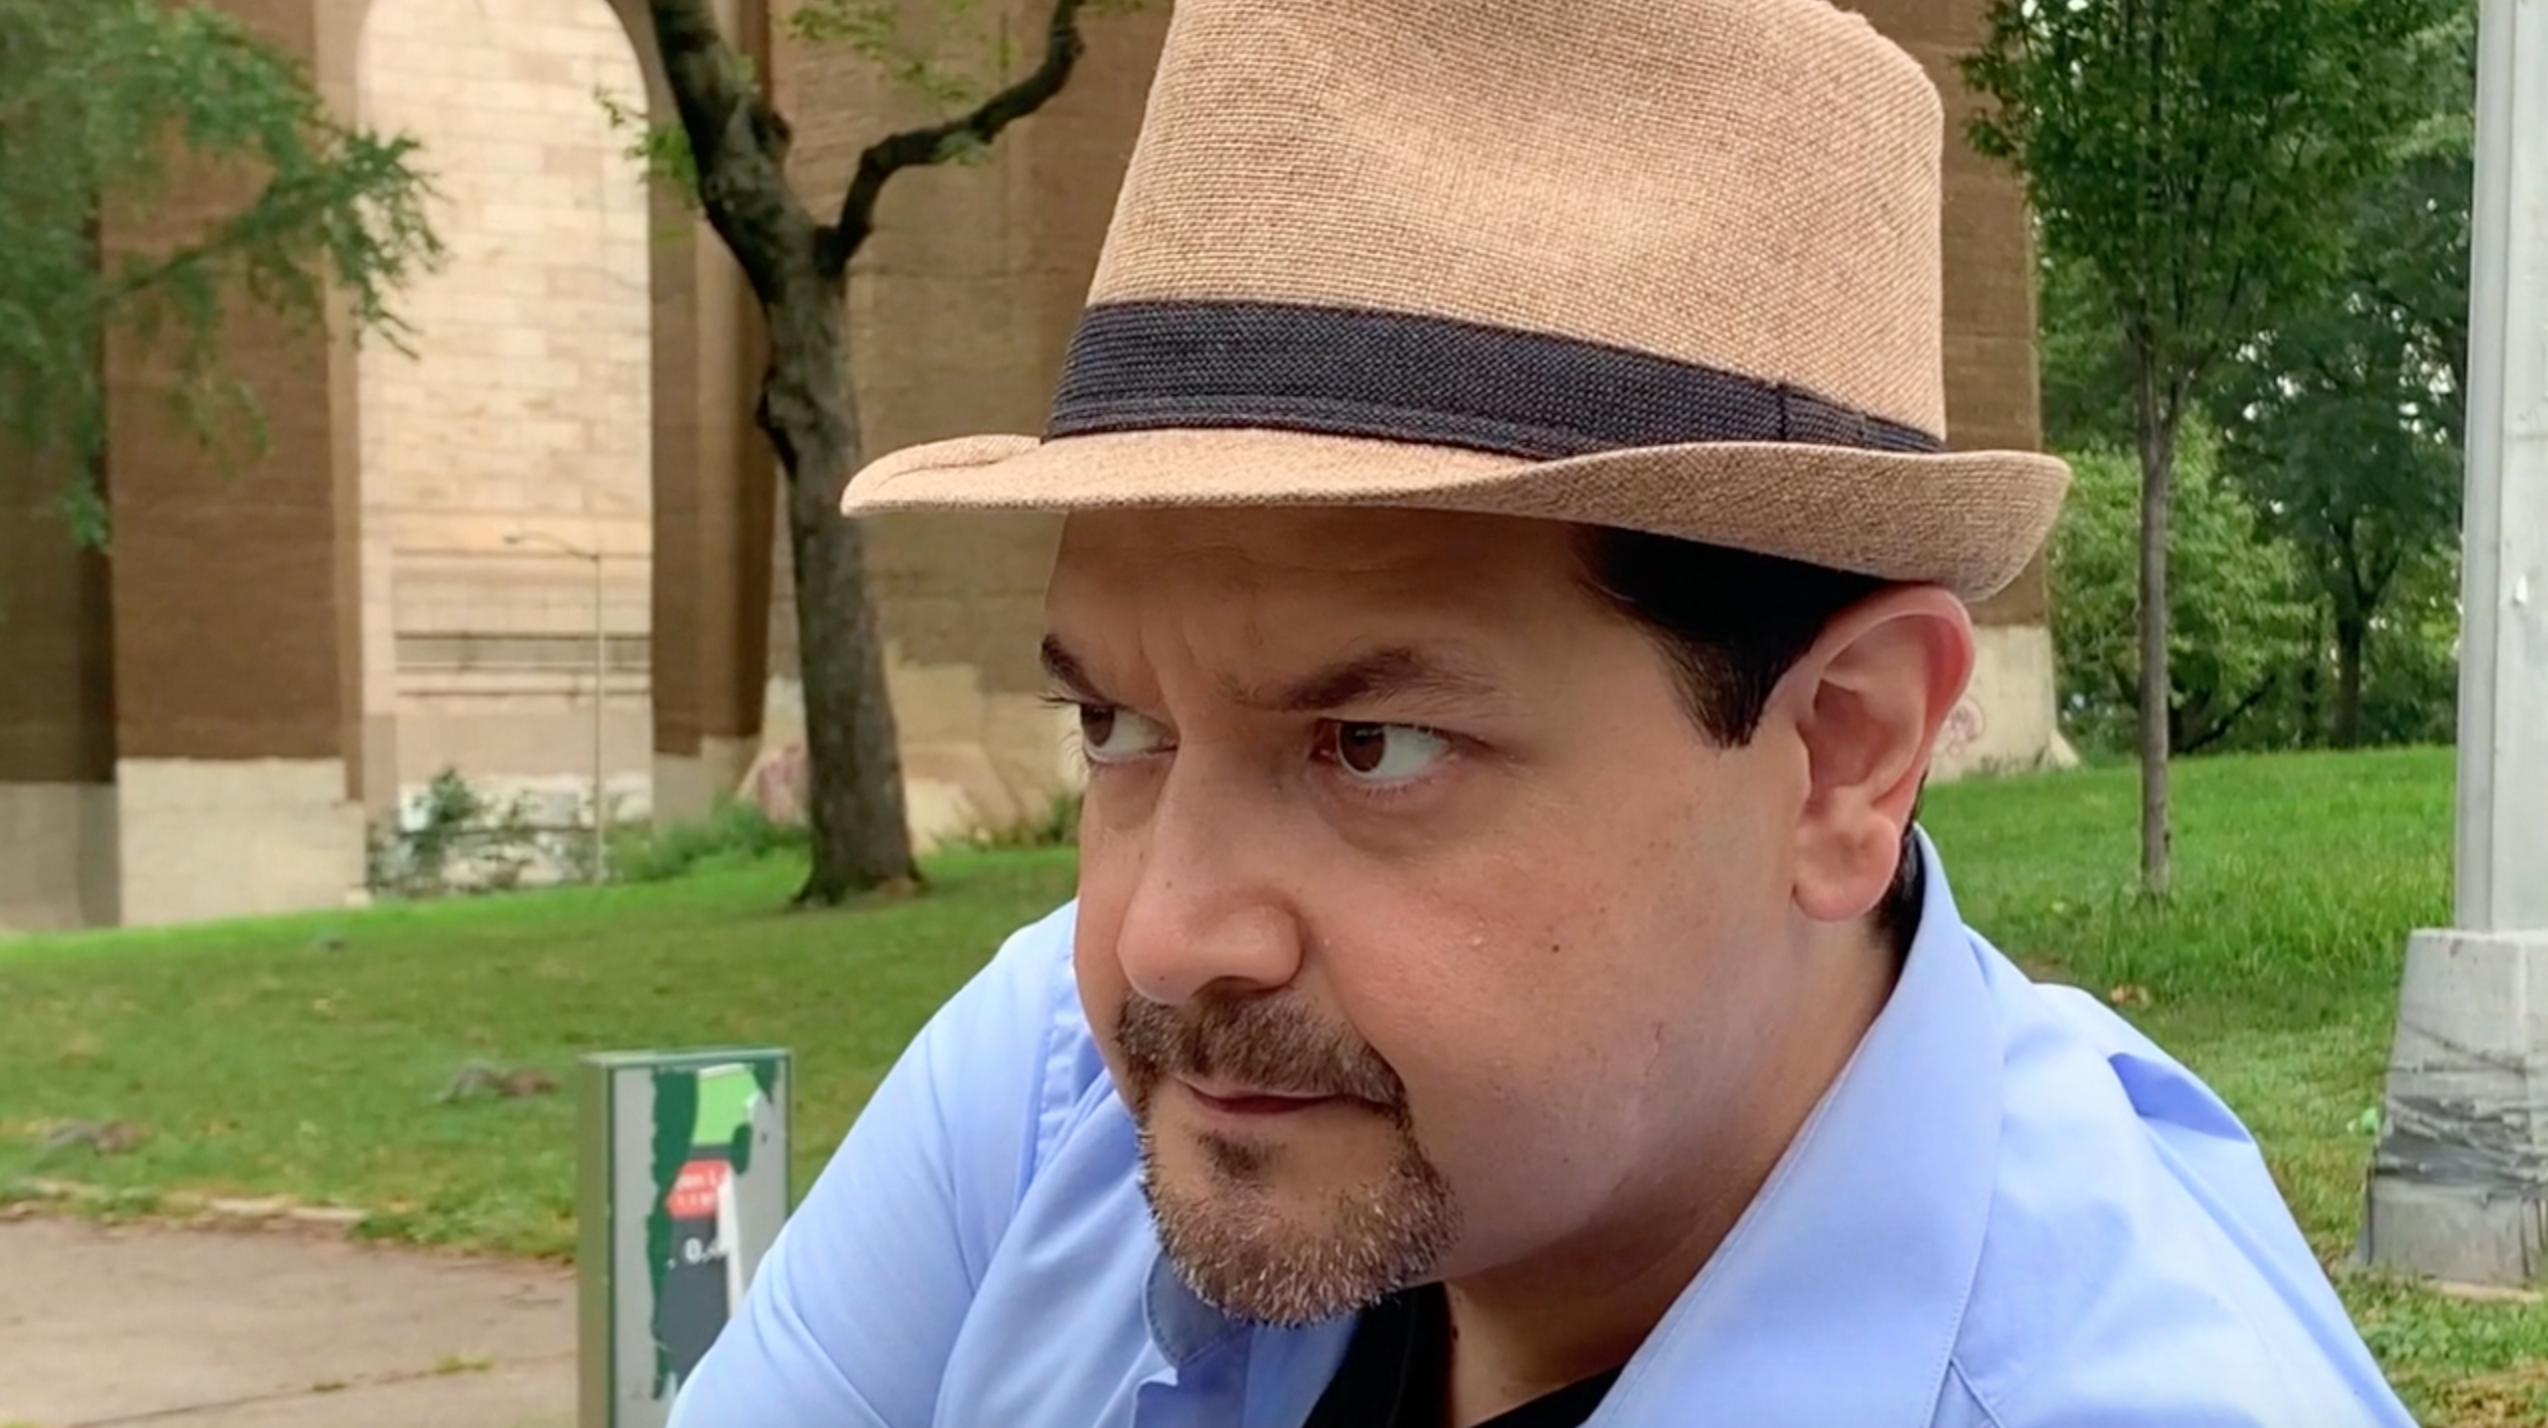 Close up of a man in a brown hat looking curiously into the distance while sitting on a park bench